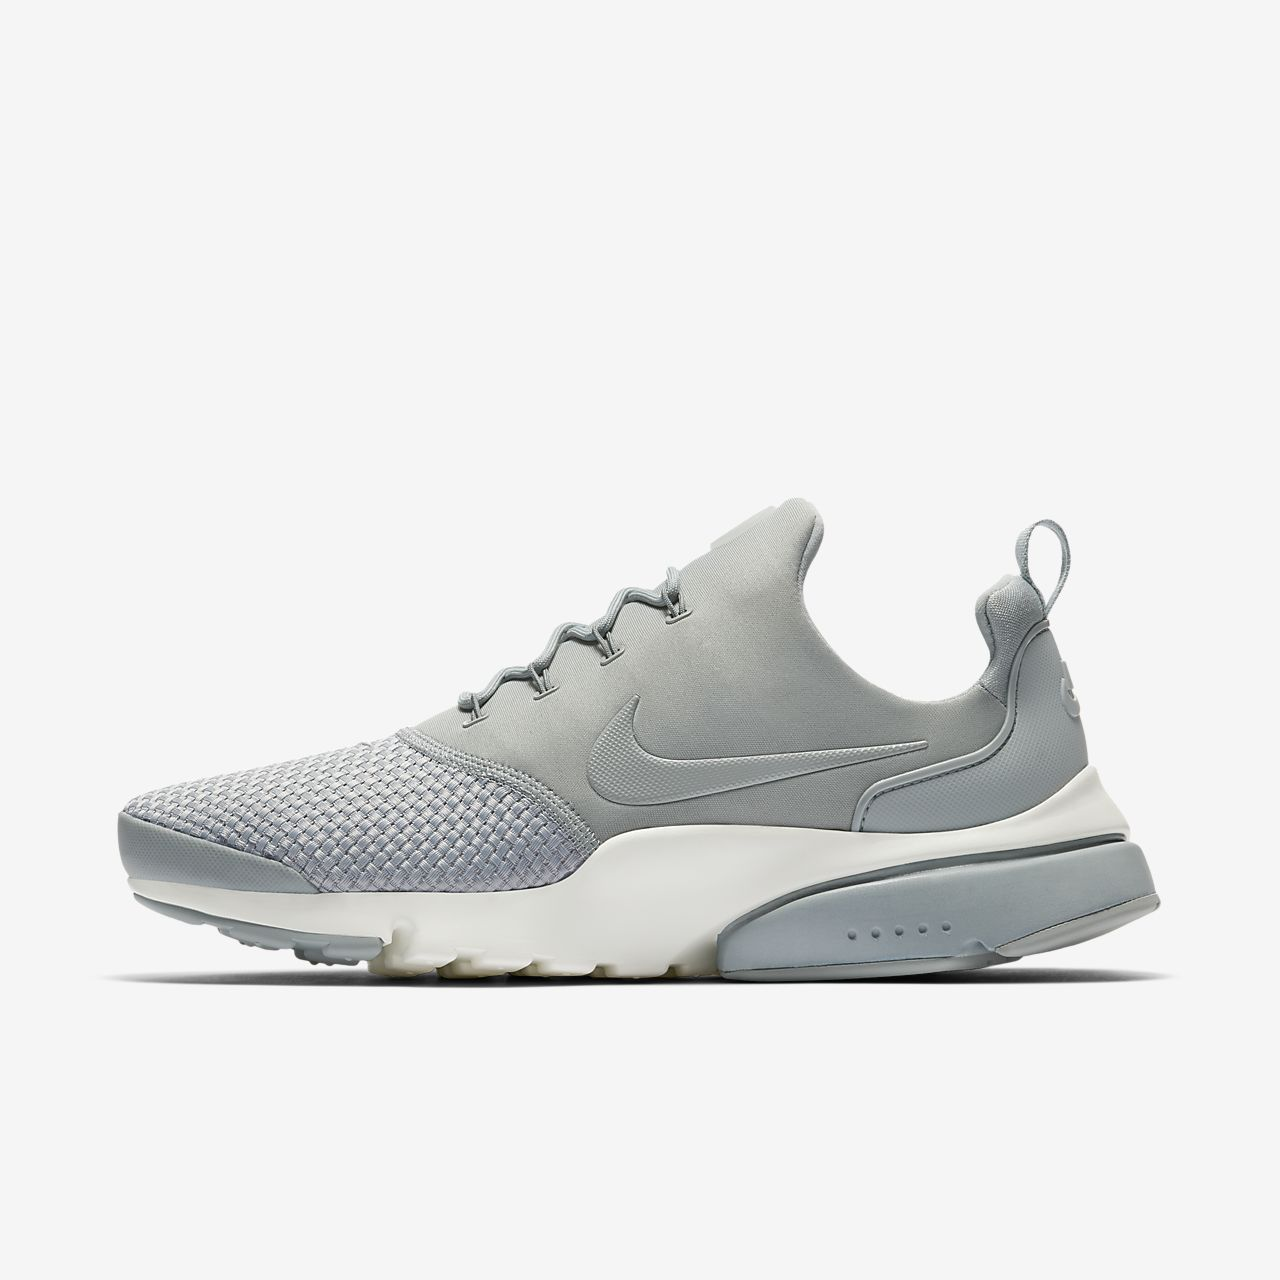 ... Nike Air Presto Fly SE Men's Shoe